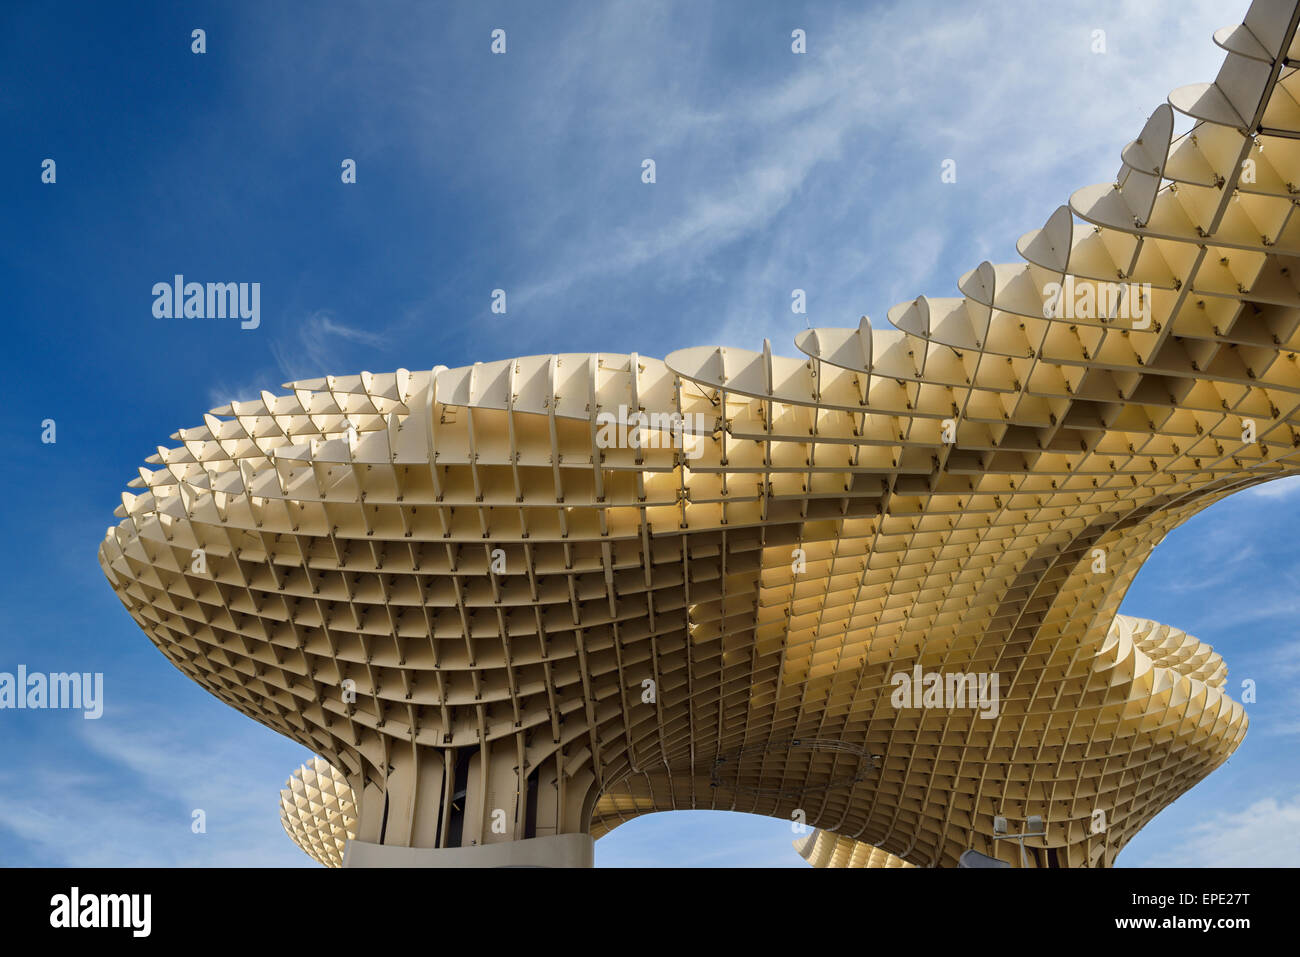 Modern abstract architecture shapes of Metropol Parasol at Plaza of the Incarnation Seville Spain against sky - Stock Image